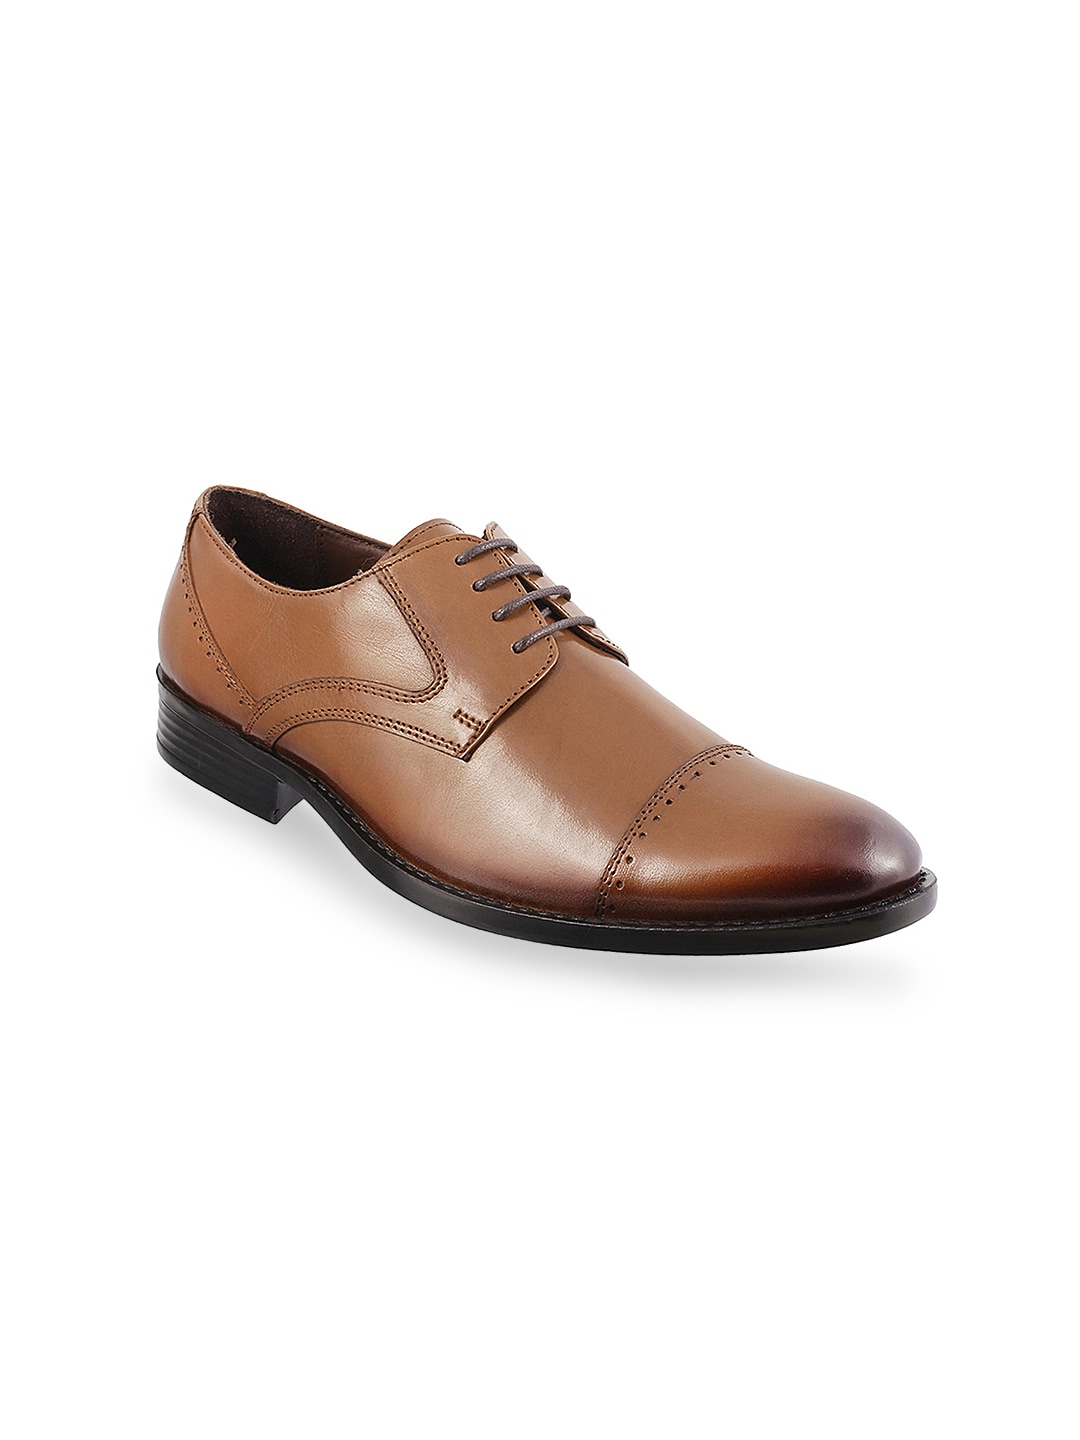 Metro Men Tan Brown Leather Brogues image